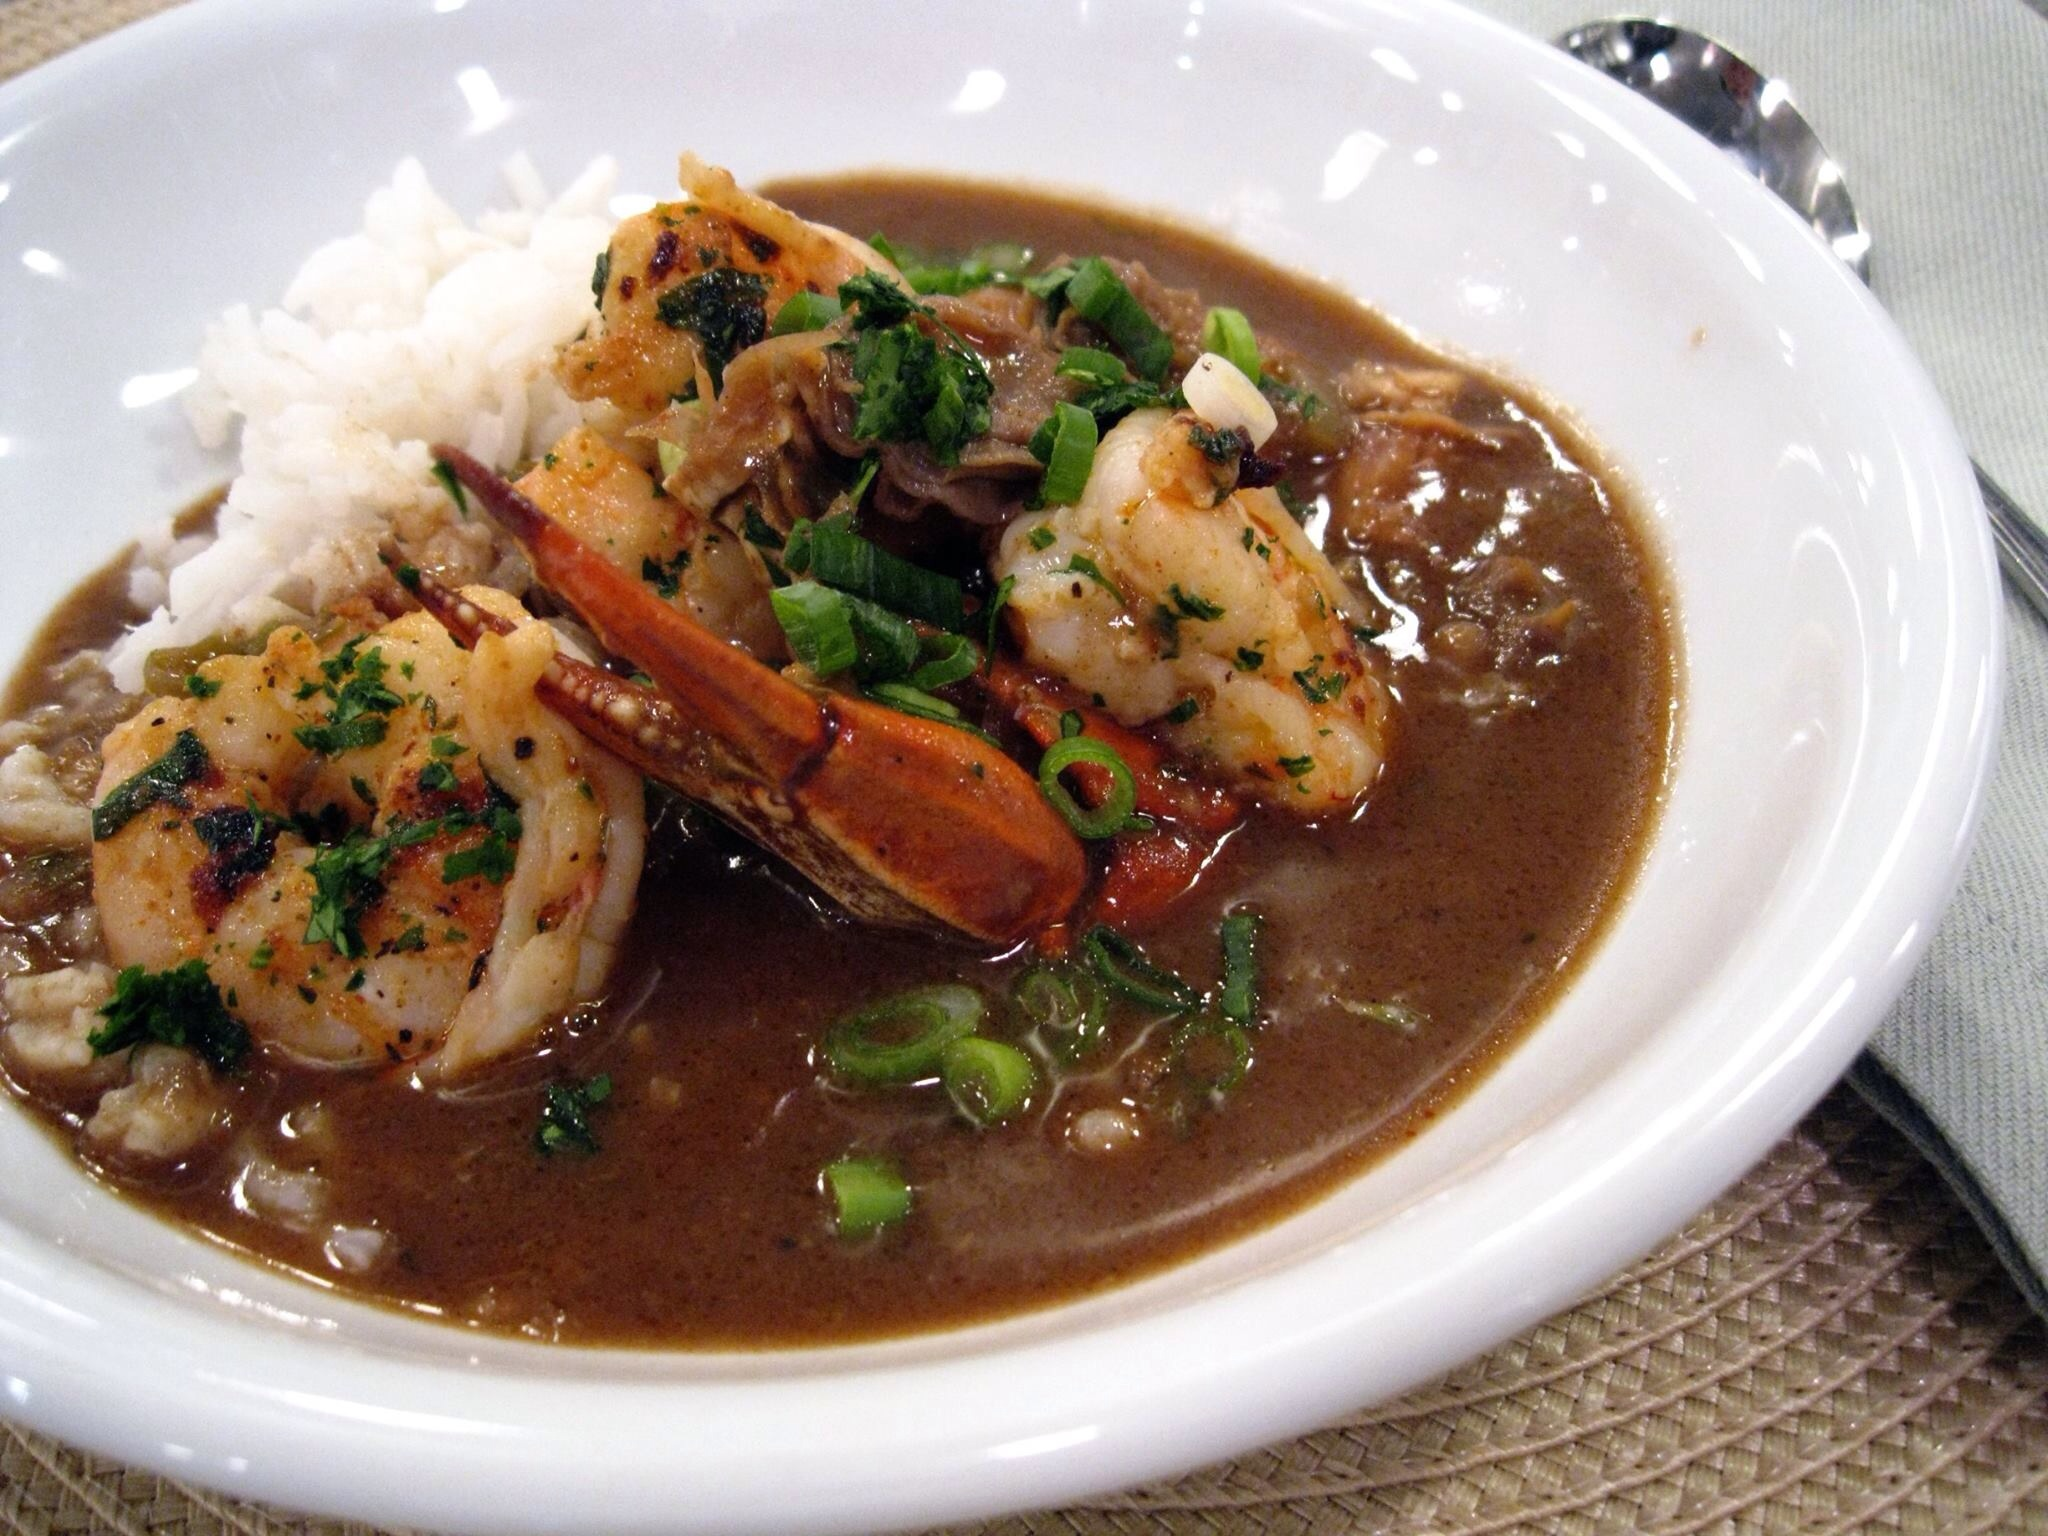 ... gumbo recipe you can t go wrong with this classic seafood gumbo